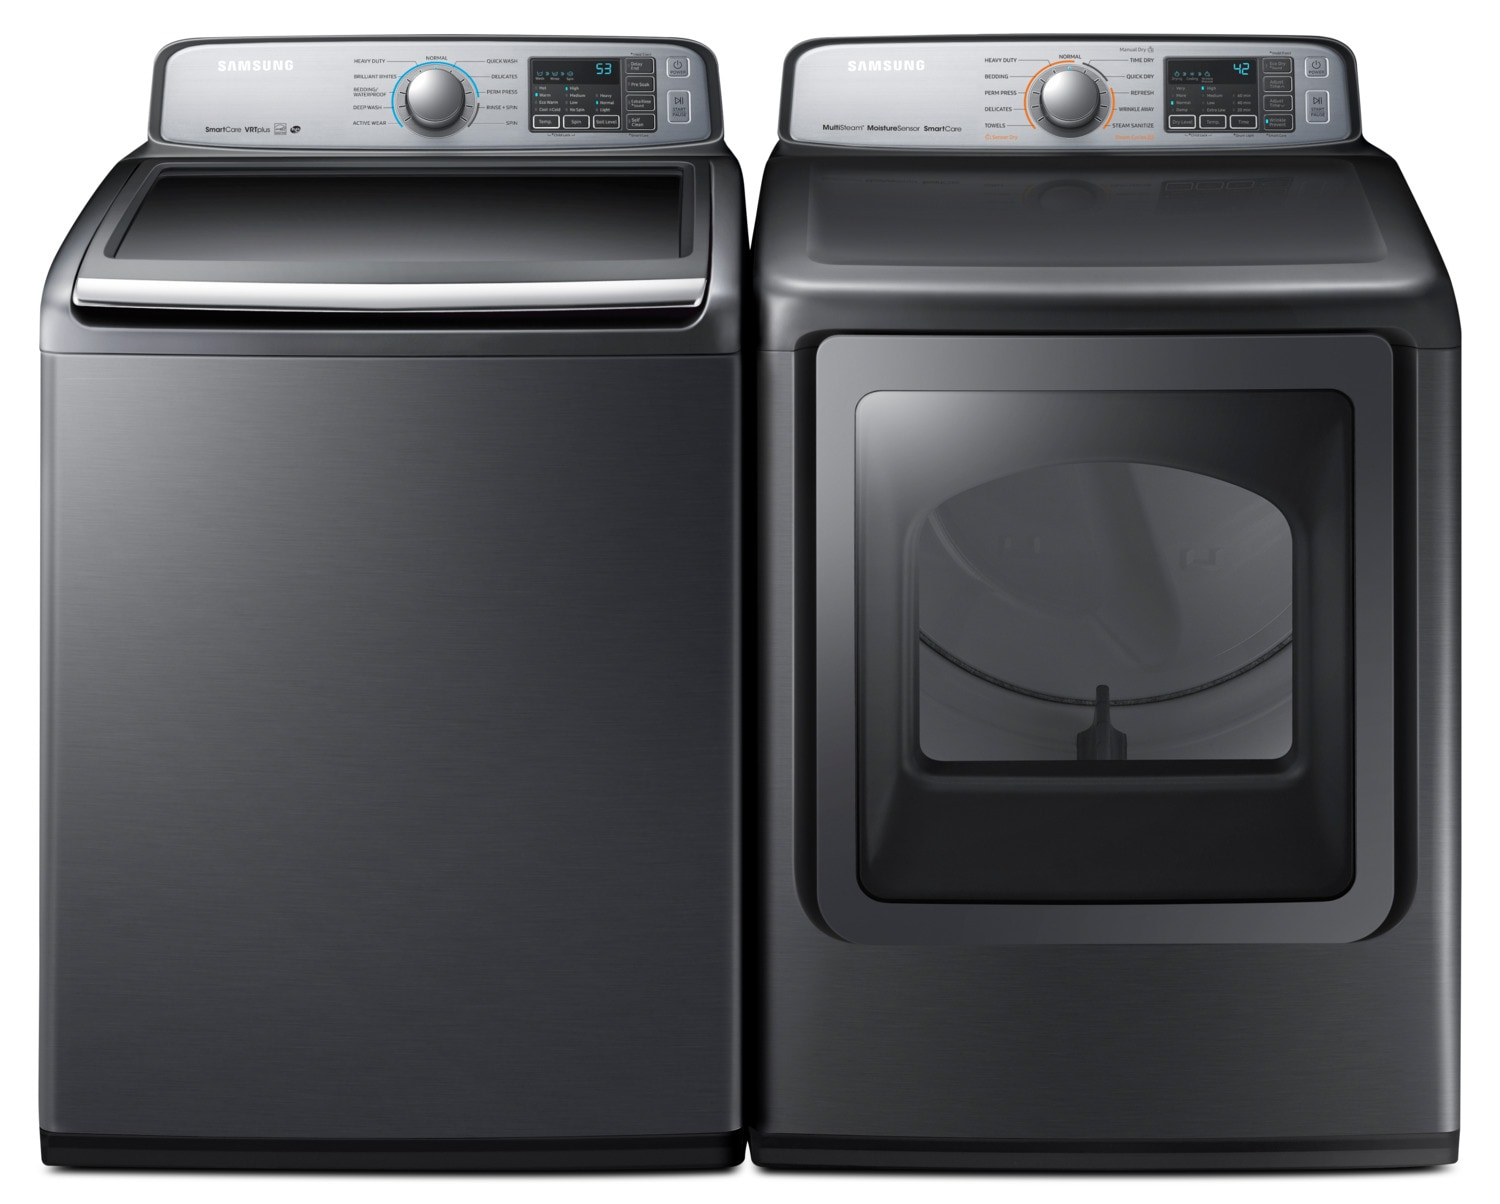 Samsung 5.8 Cu. Ft. Top-Load Washer and 7.4 Cu. Ft. Multi-Steam™ Electric Dryer